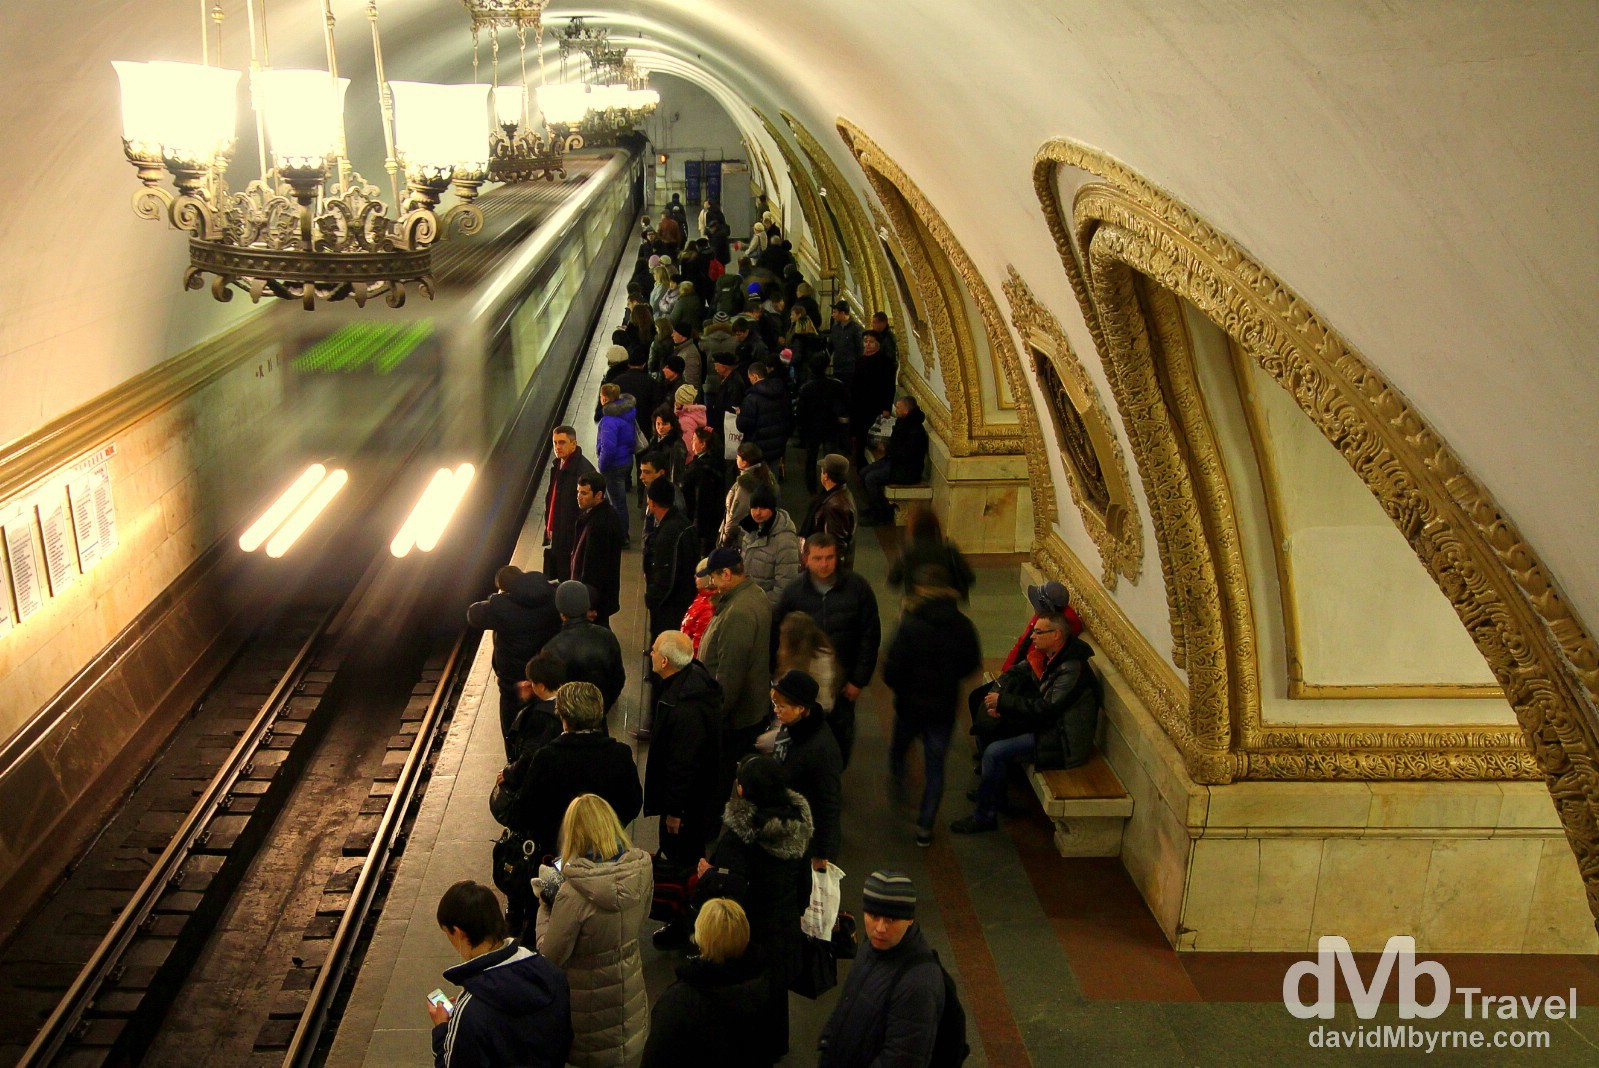 A train entering Kievskaya Metro Station of the Moscow Metro system, Moscow, Russia. November 20th 2012.